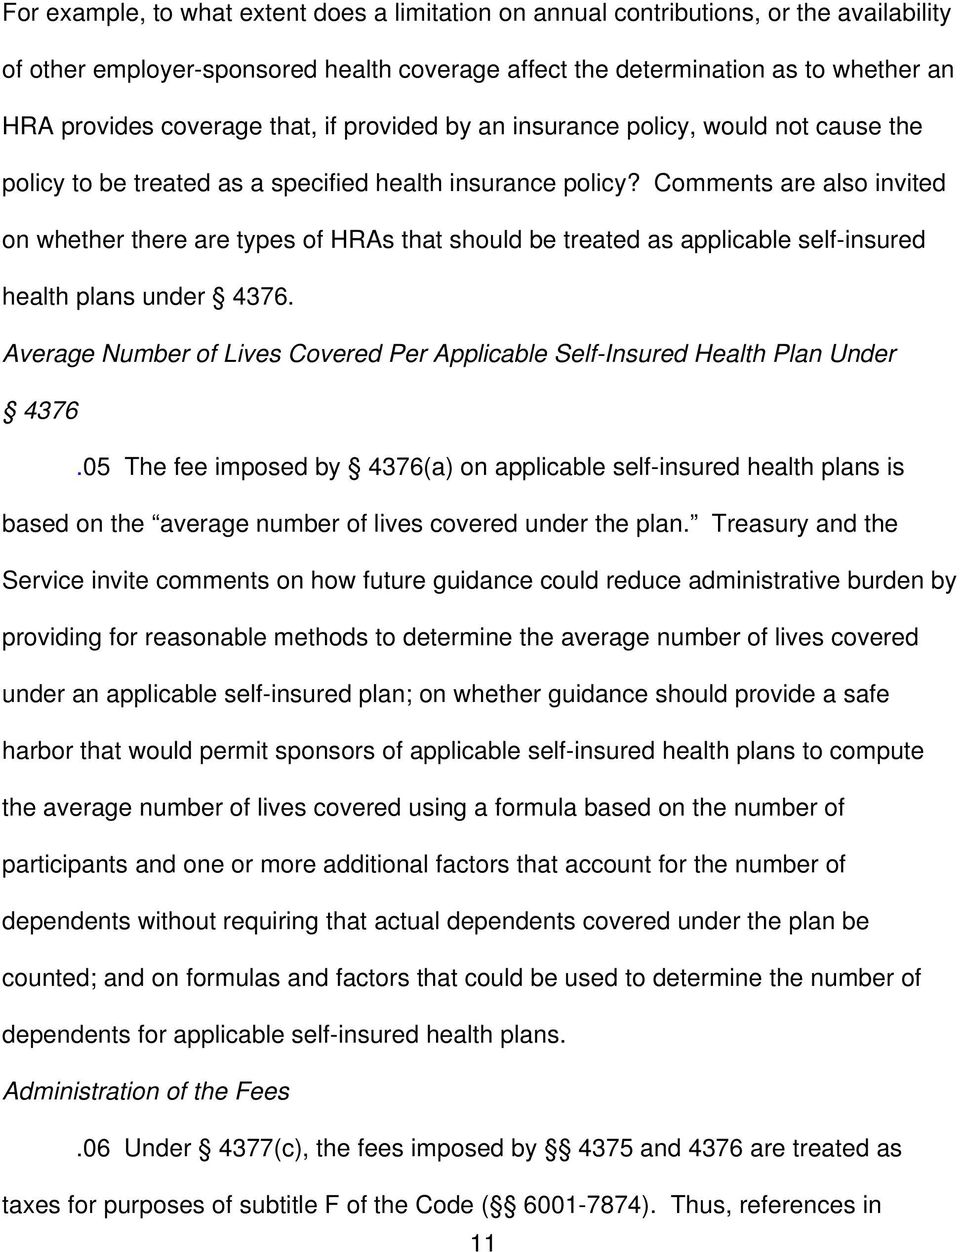 Comments are also invited on whether there are types of HRAs that should be treated as applicable self-insured health plans under 4376.